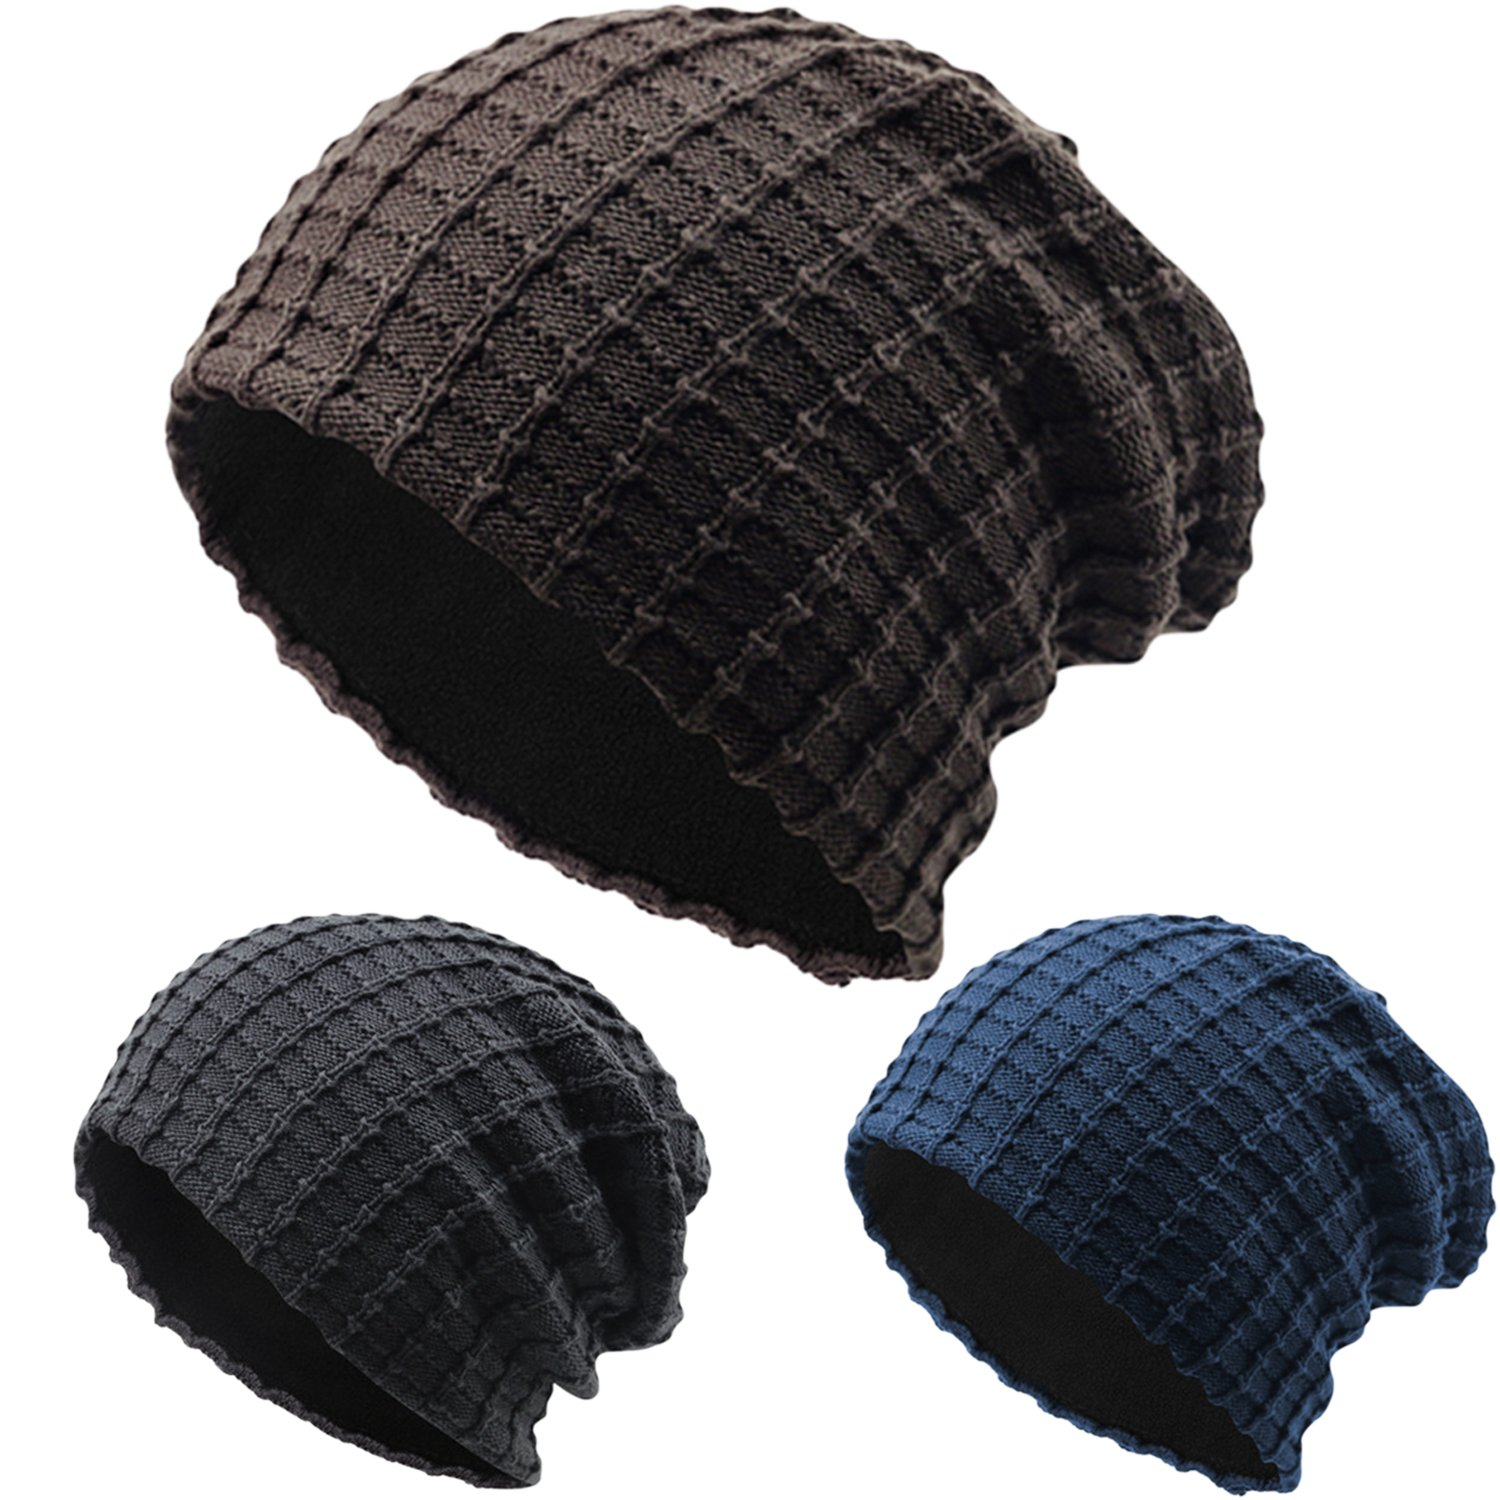 0bb68e7f622fd Slouchy Soft Knitted Beanie Unisex Chunky Ski Snowboarding Headwear Warm  Baggy Hat Casual Cap 2 Pack Black Coffee at Amazon Men's Clothing store: